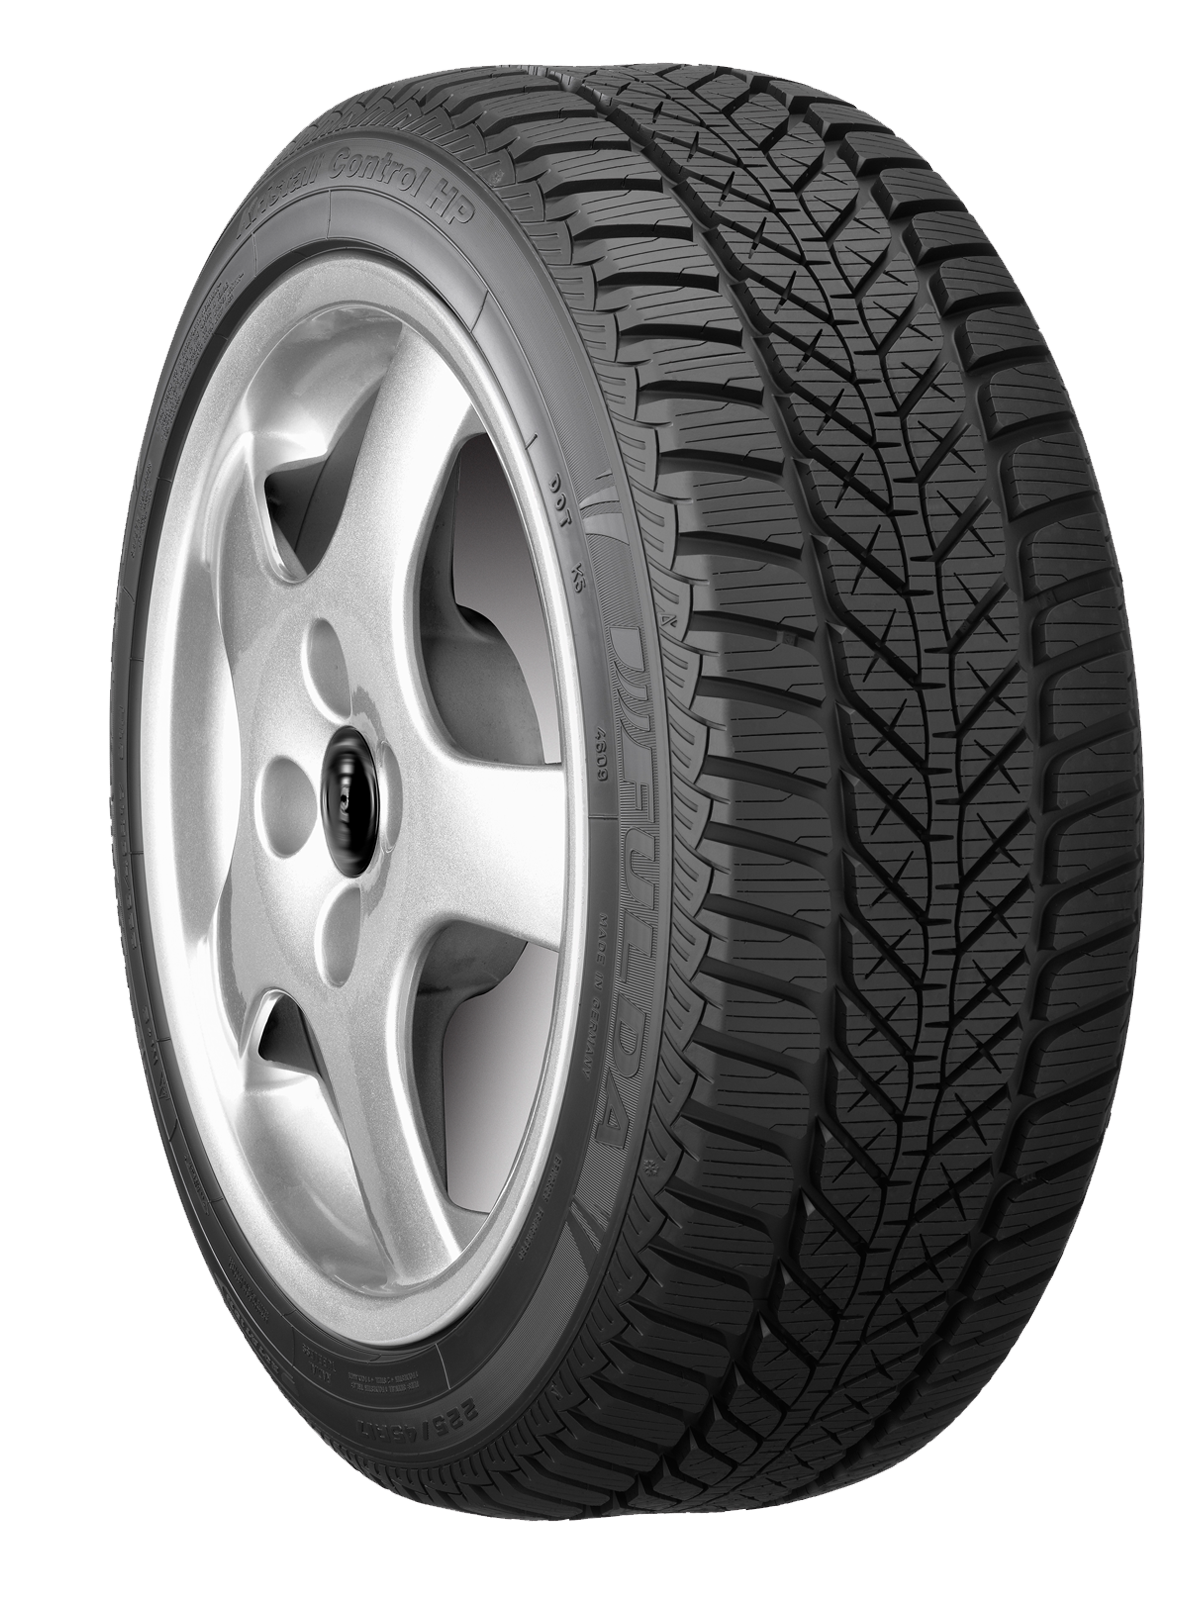 Gomme Nuove Fulda 195/55 R16 91H KRISTALL CONTROL HP 2 XL M+S pneumatici nuovi Invernale